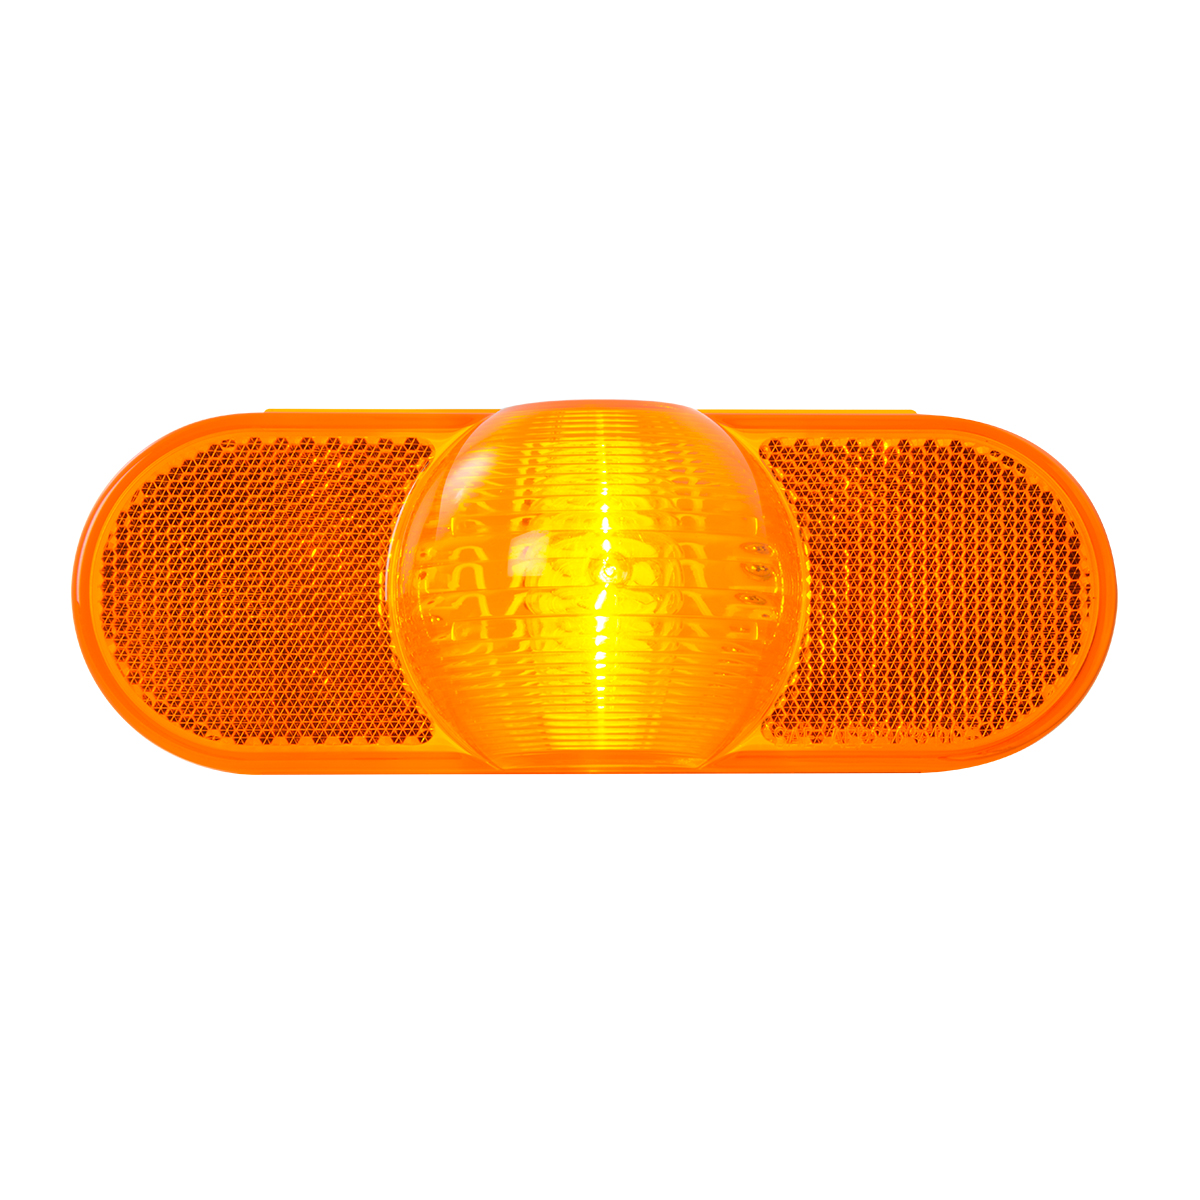 #77942 Oval Full Moon Side Turn Light with Reflector - Amber Lens Only